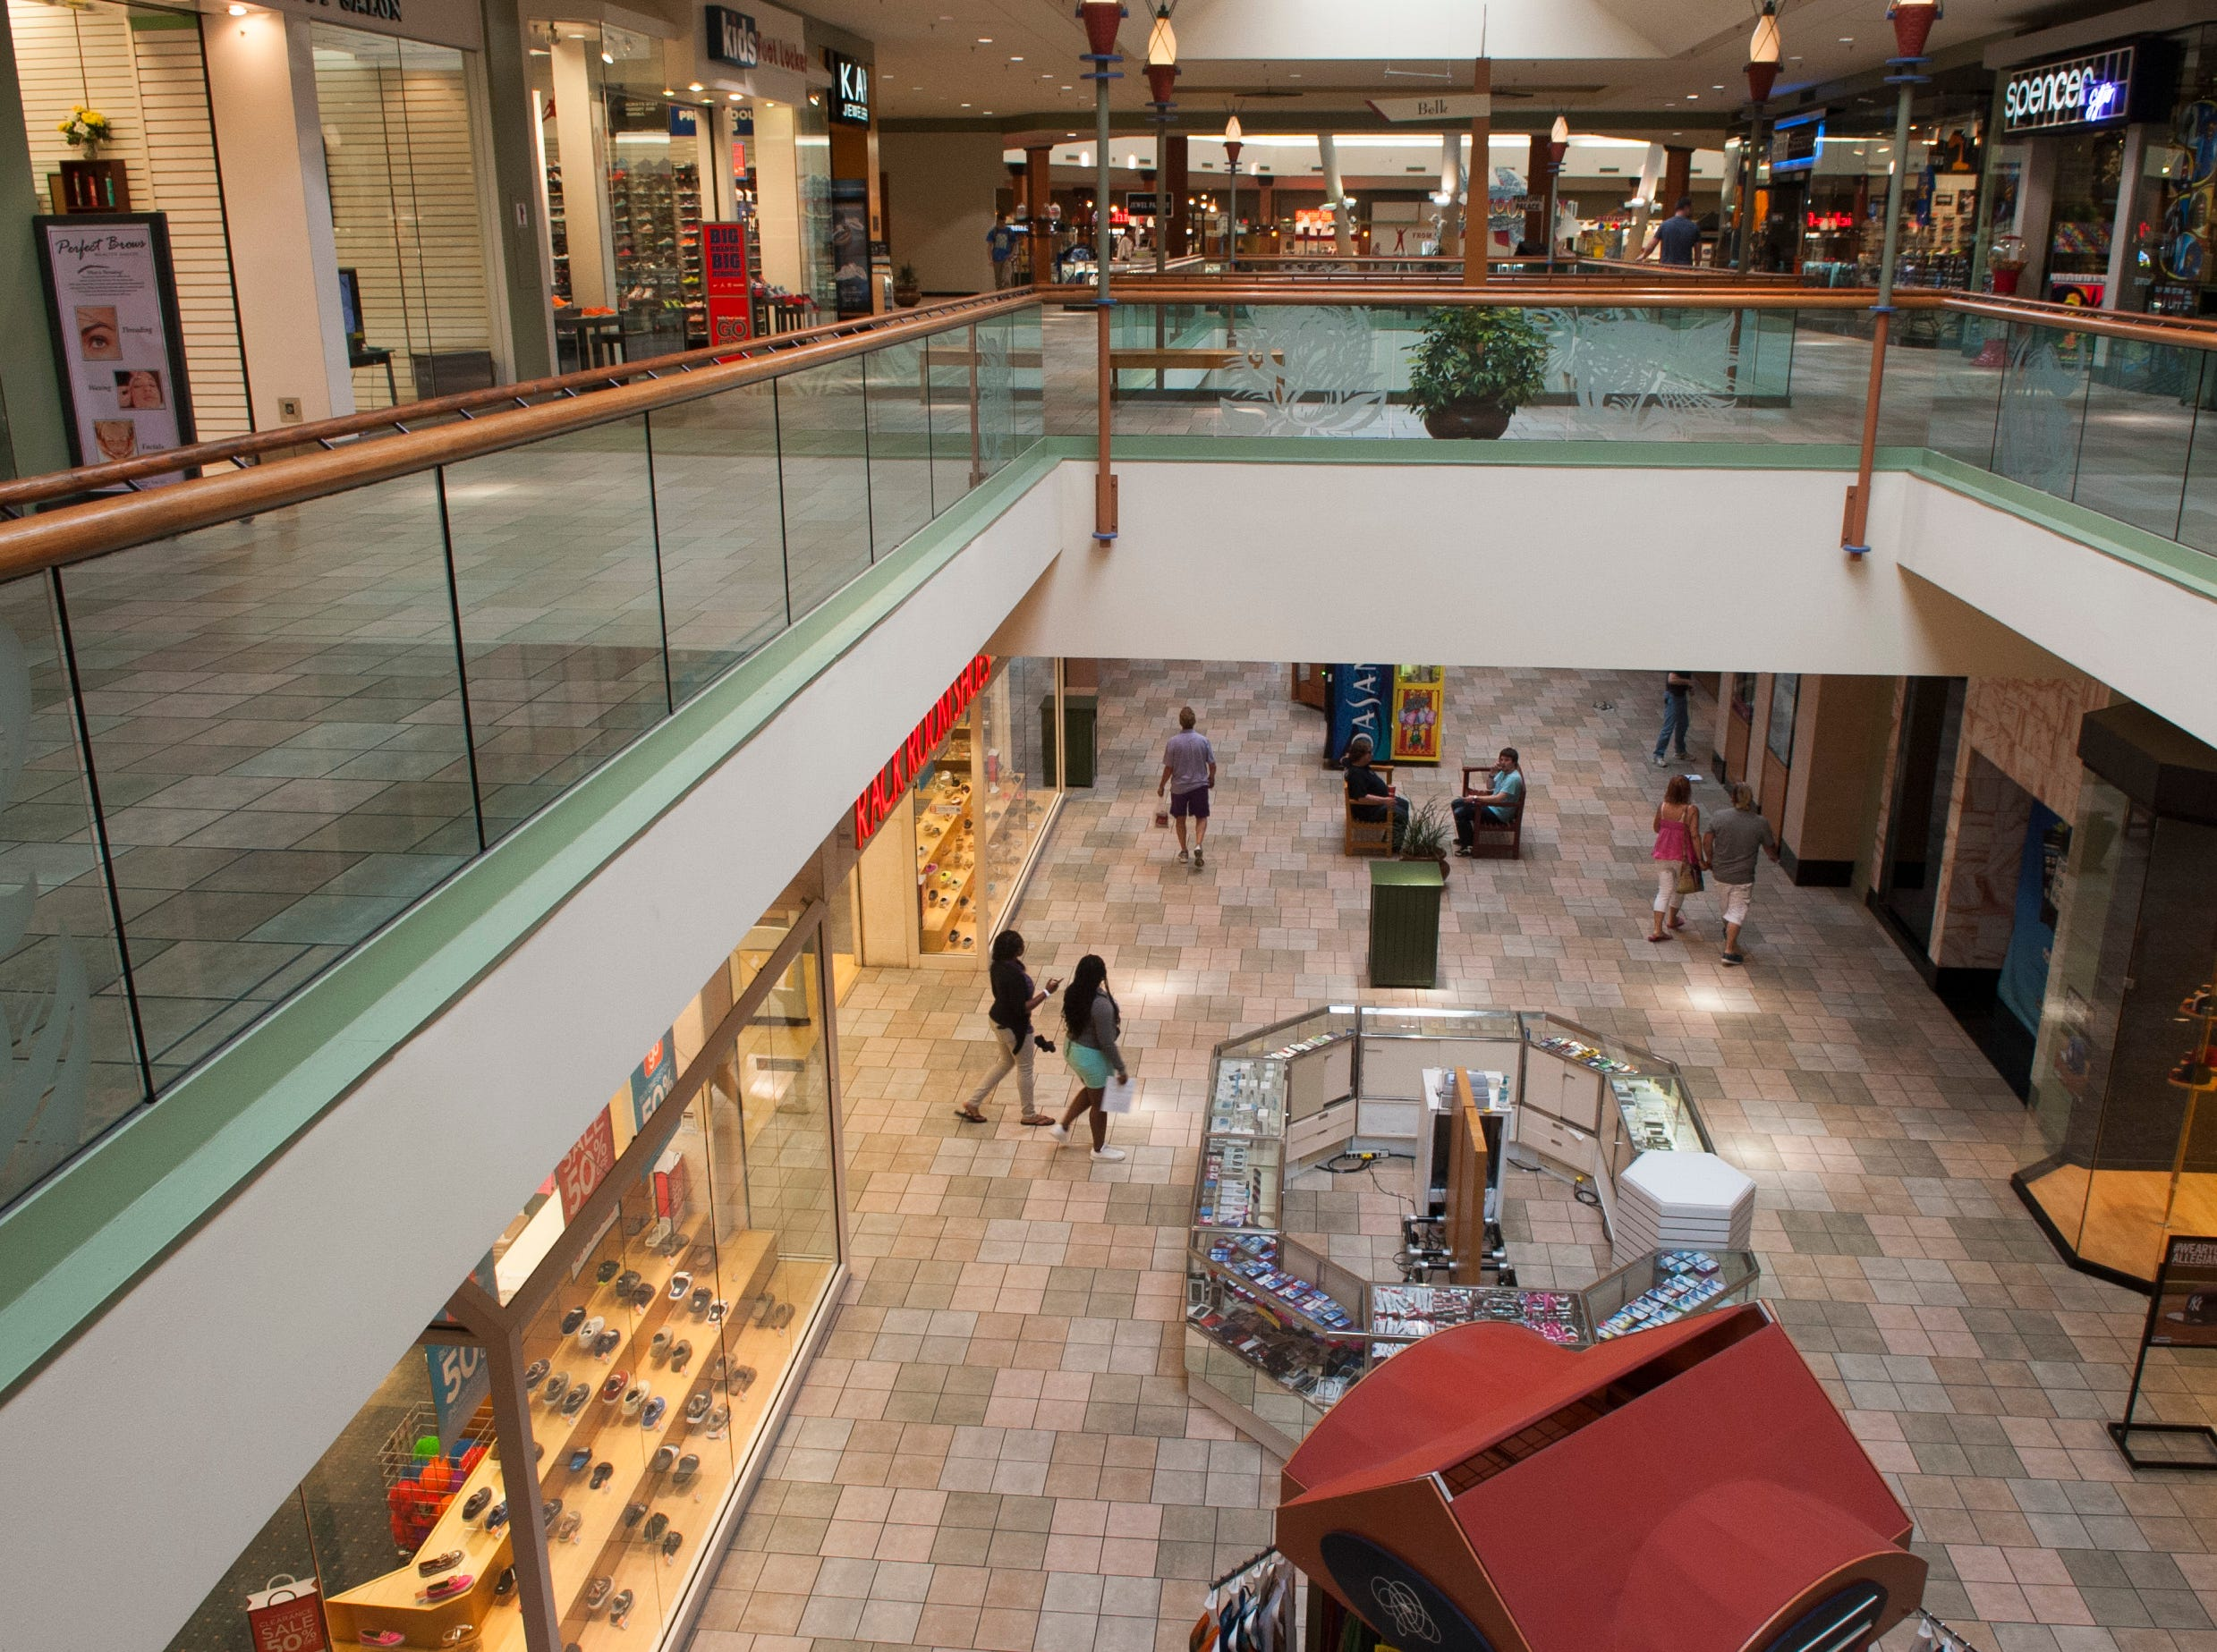 An effort is underway to rejuvenate Knoxville Center Mall and the surrounding area including new signage, vegetation management and new business organization. The mall has suffered over the years from a loss of businesses and shoppers and Simon Properties had the property on the market for sale last year. ( J. MILES CARY/NEWS SENTINEL )